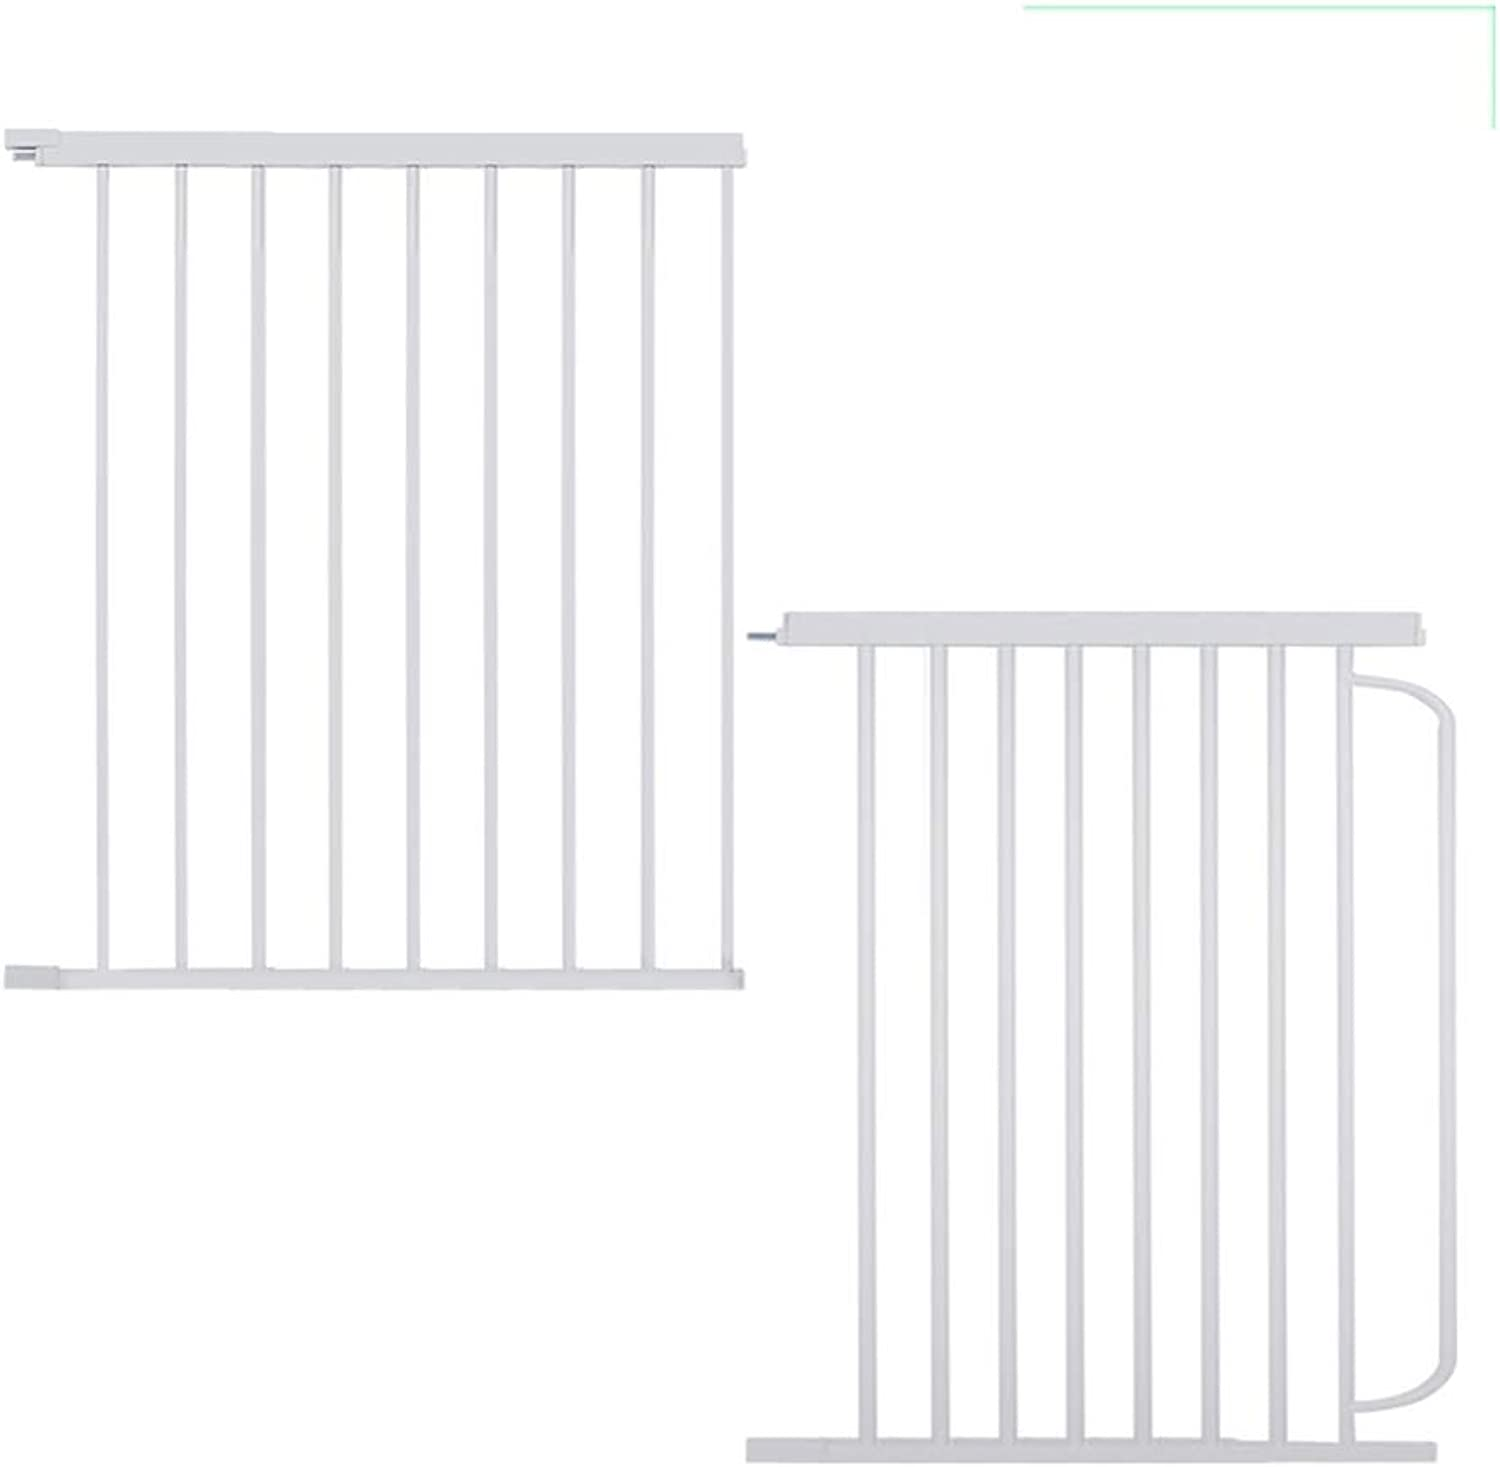 GHHZZQ Door Bar 45 Extensions Accessories Indoor Barrier Fence Small Pet Door Expansion Room Divider Portable Folding Fasteners (color   White, Size   45x76cm)